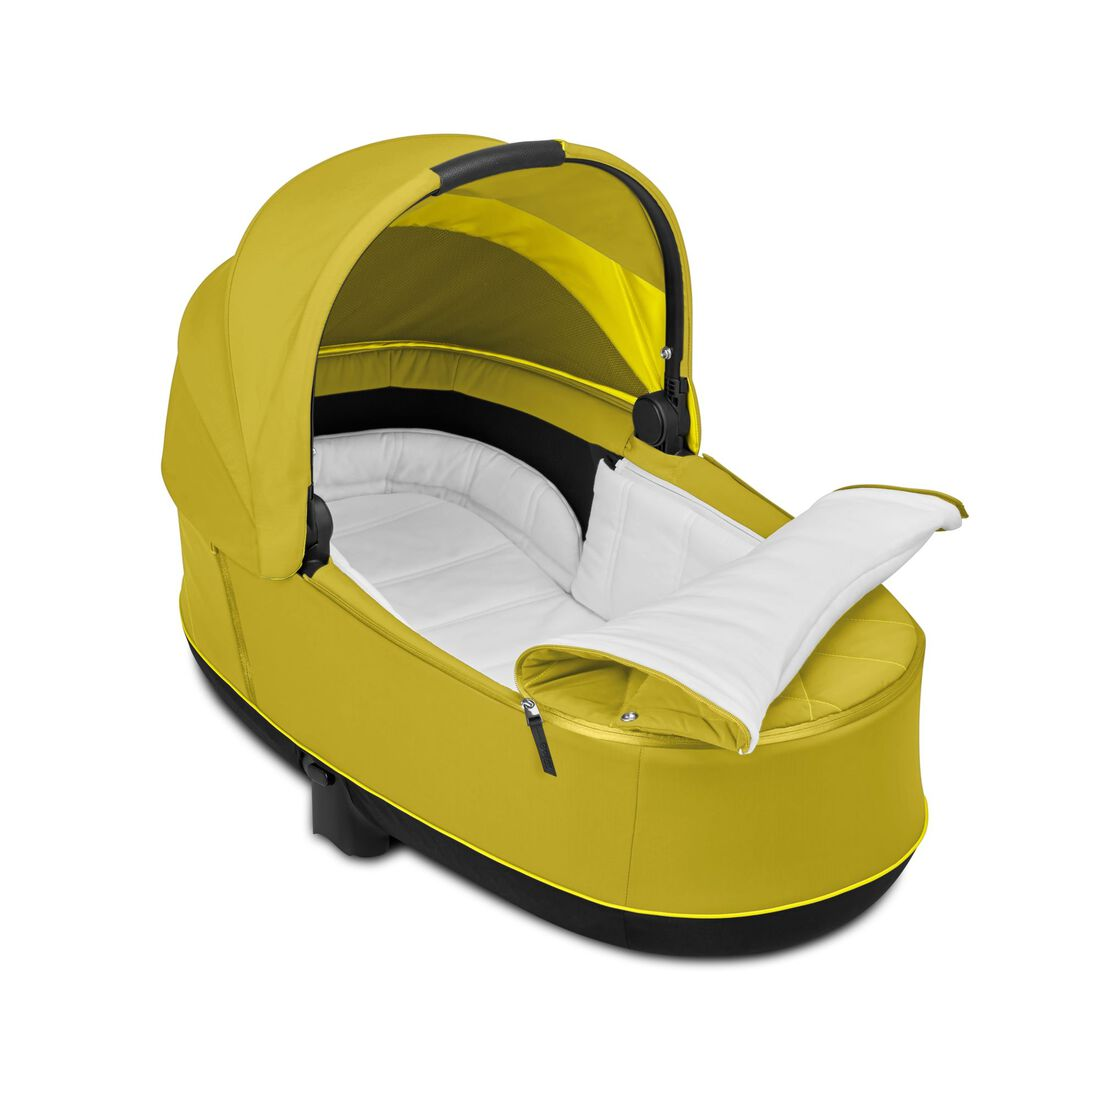 CYBEX Priam Lux Carry Cot - Mustard Yellow in Mustard Yellow large image number 3